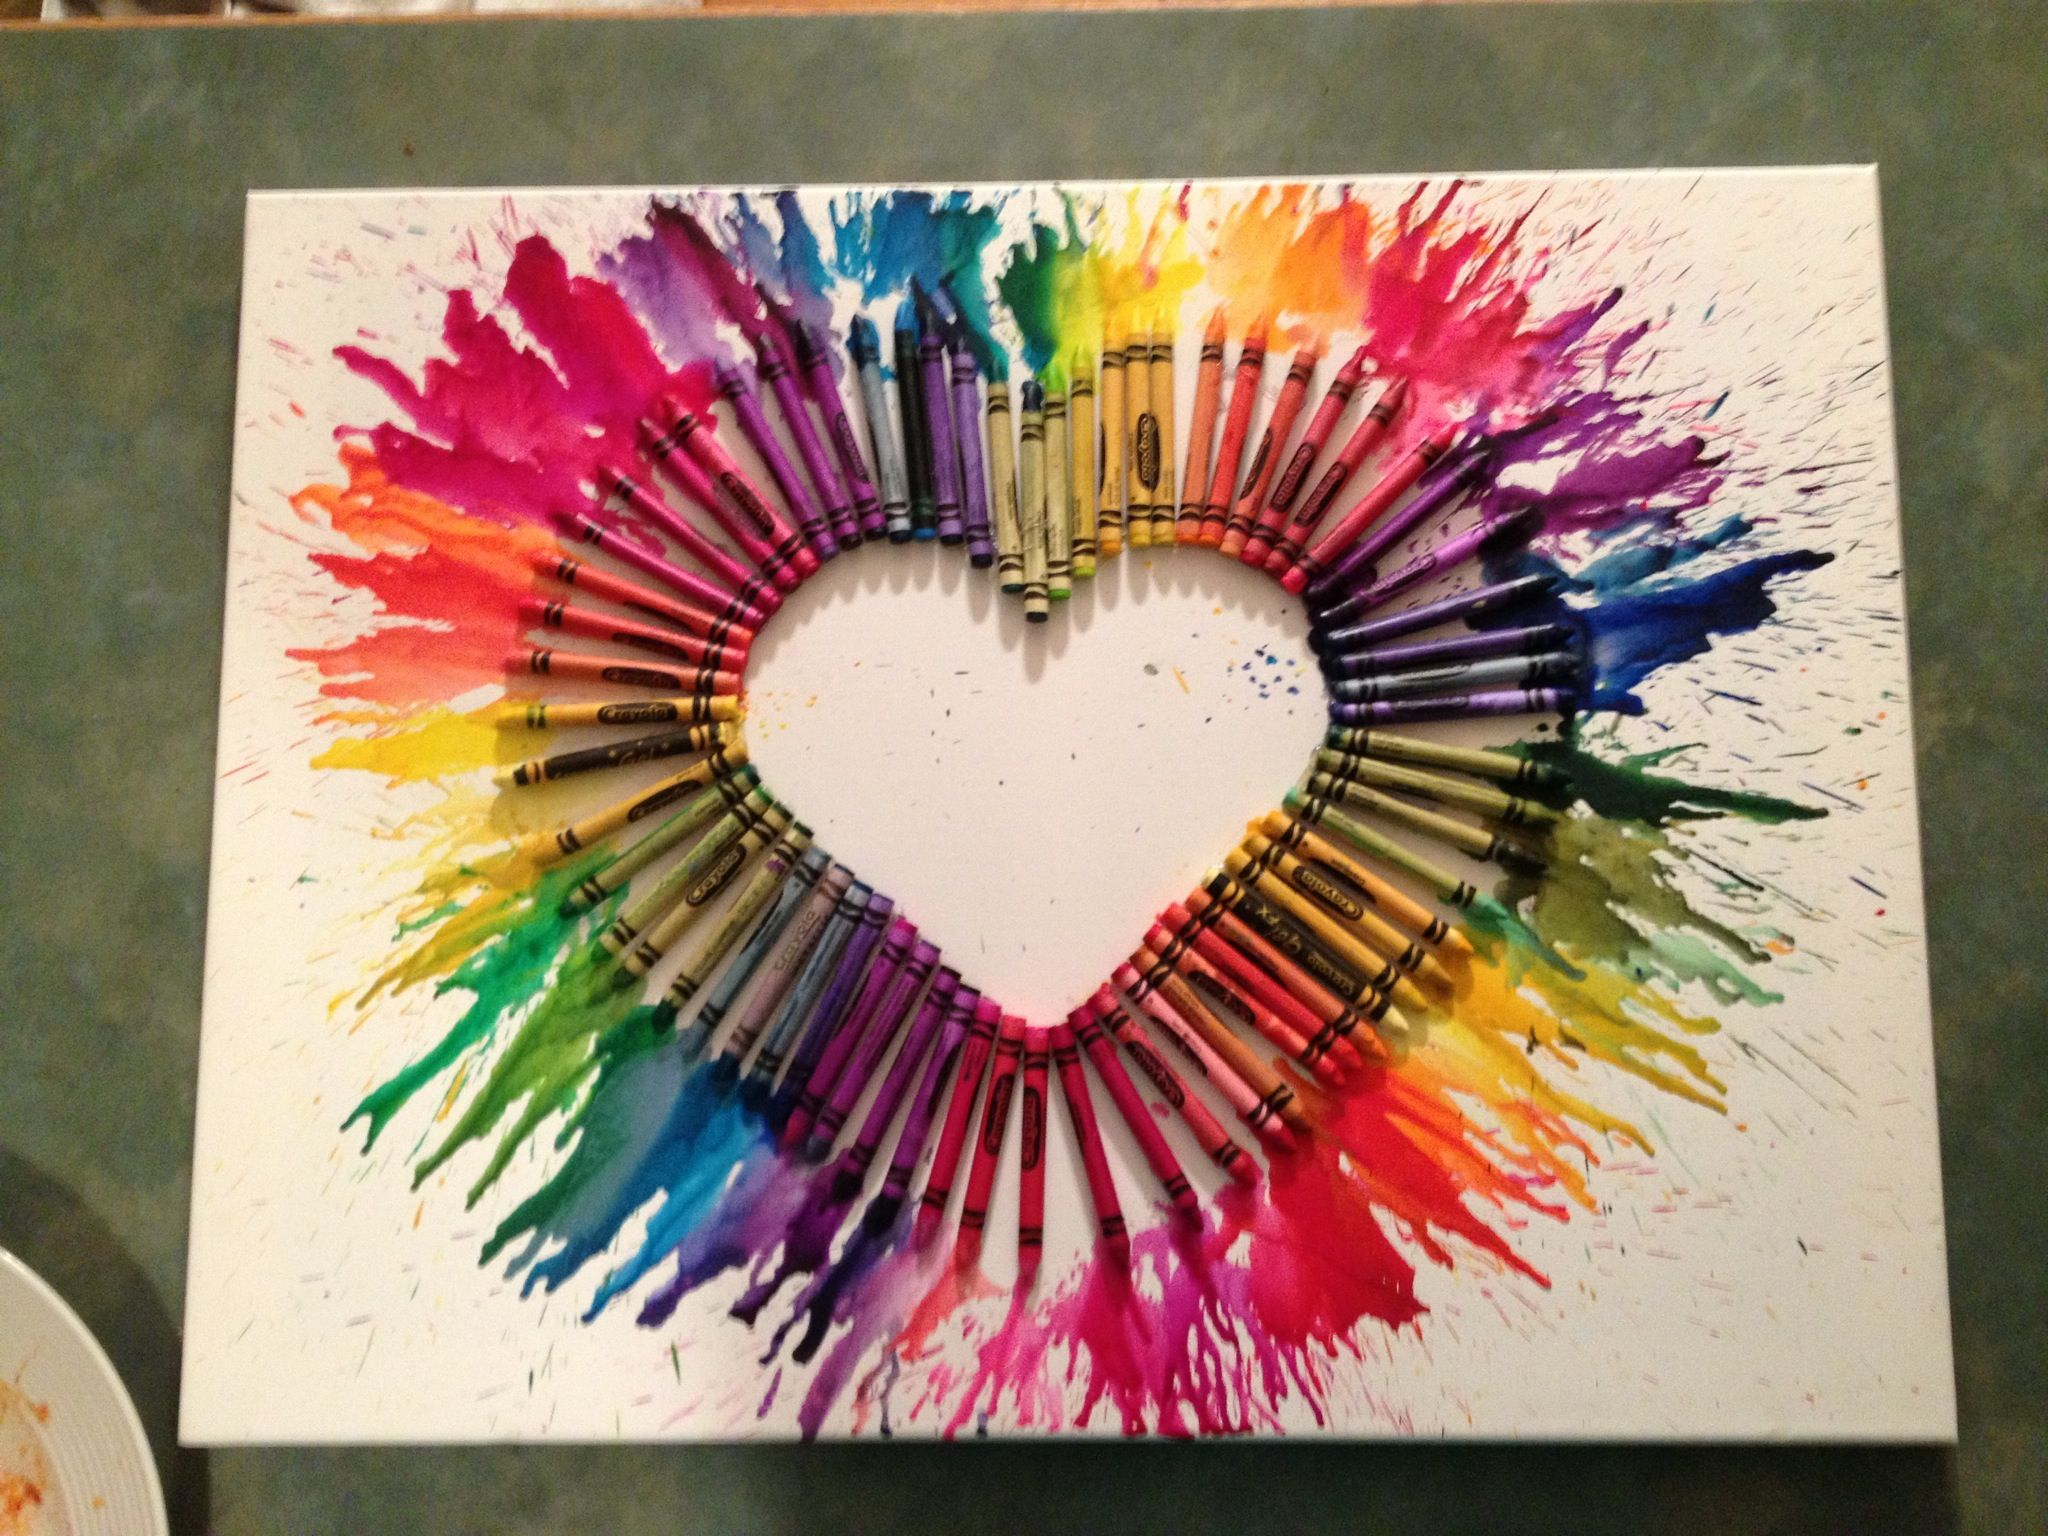 Crayon Art Arts And Crafts Project Arts And Crafts For Teens